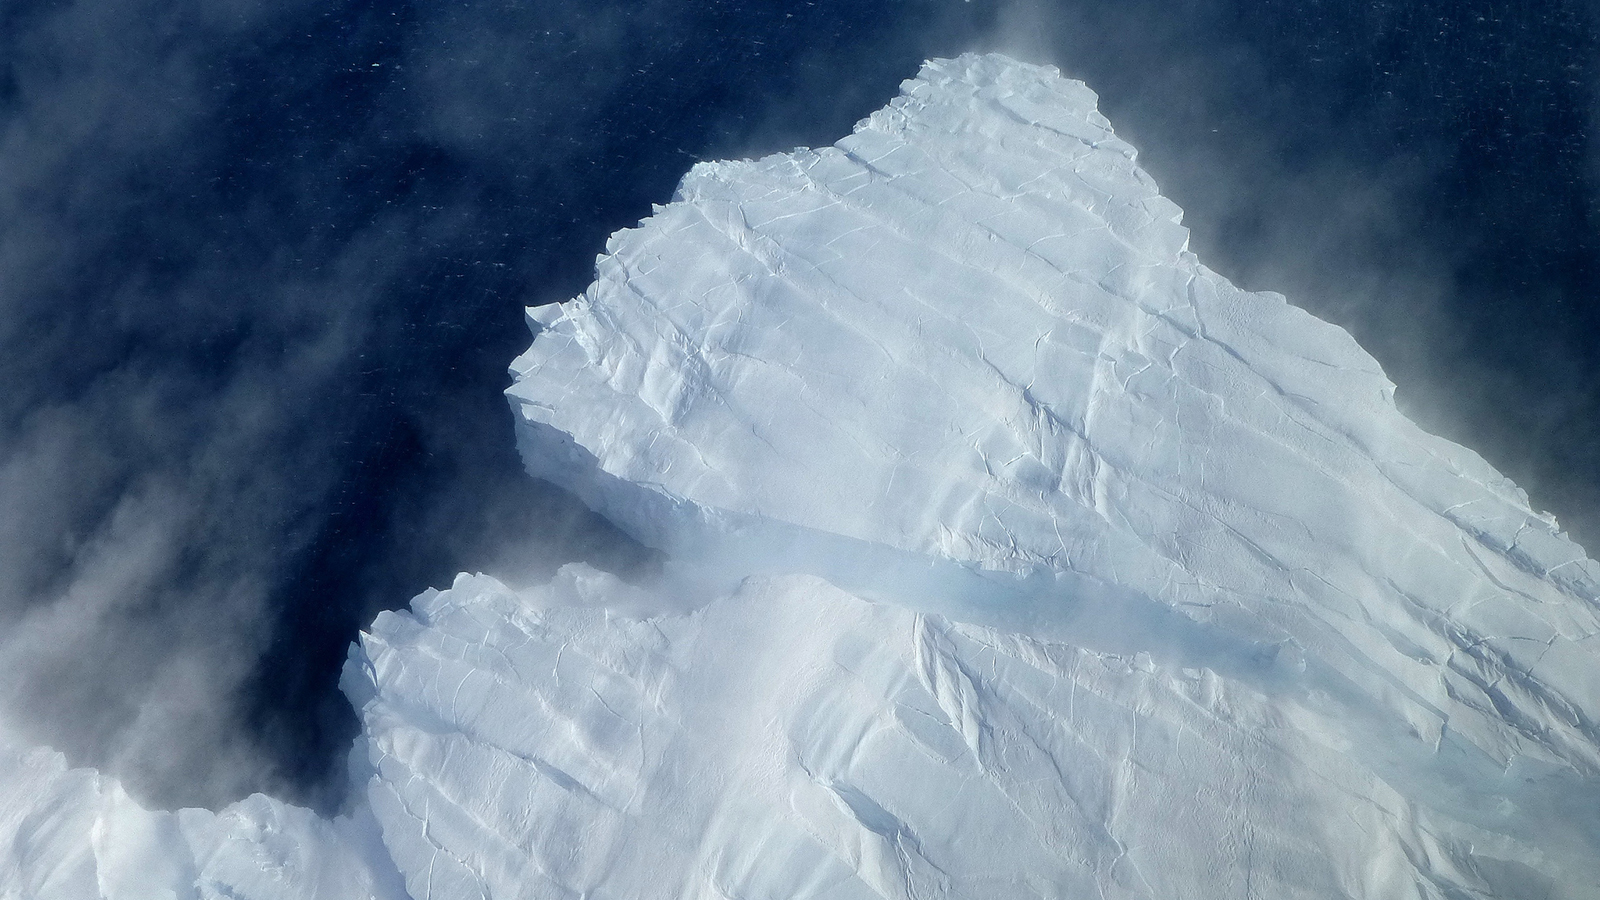 Read the Antarctica blockbuster that's freaking everyone out. - Grist